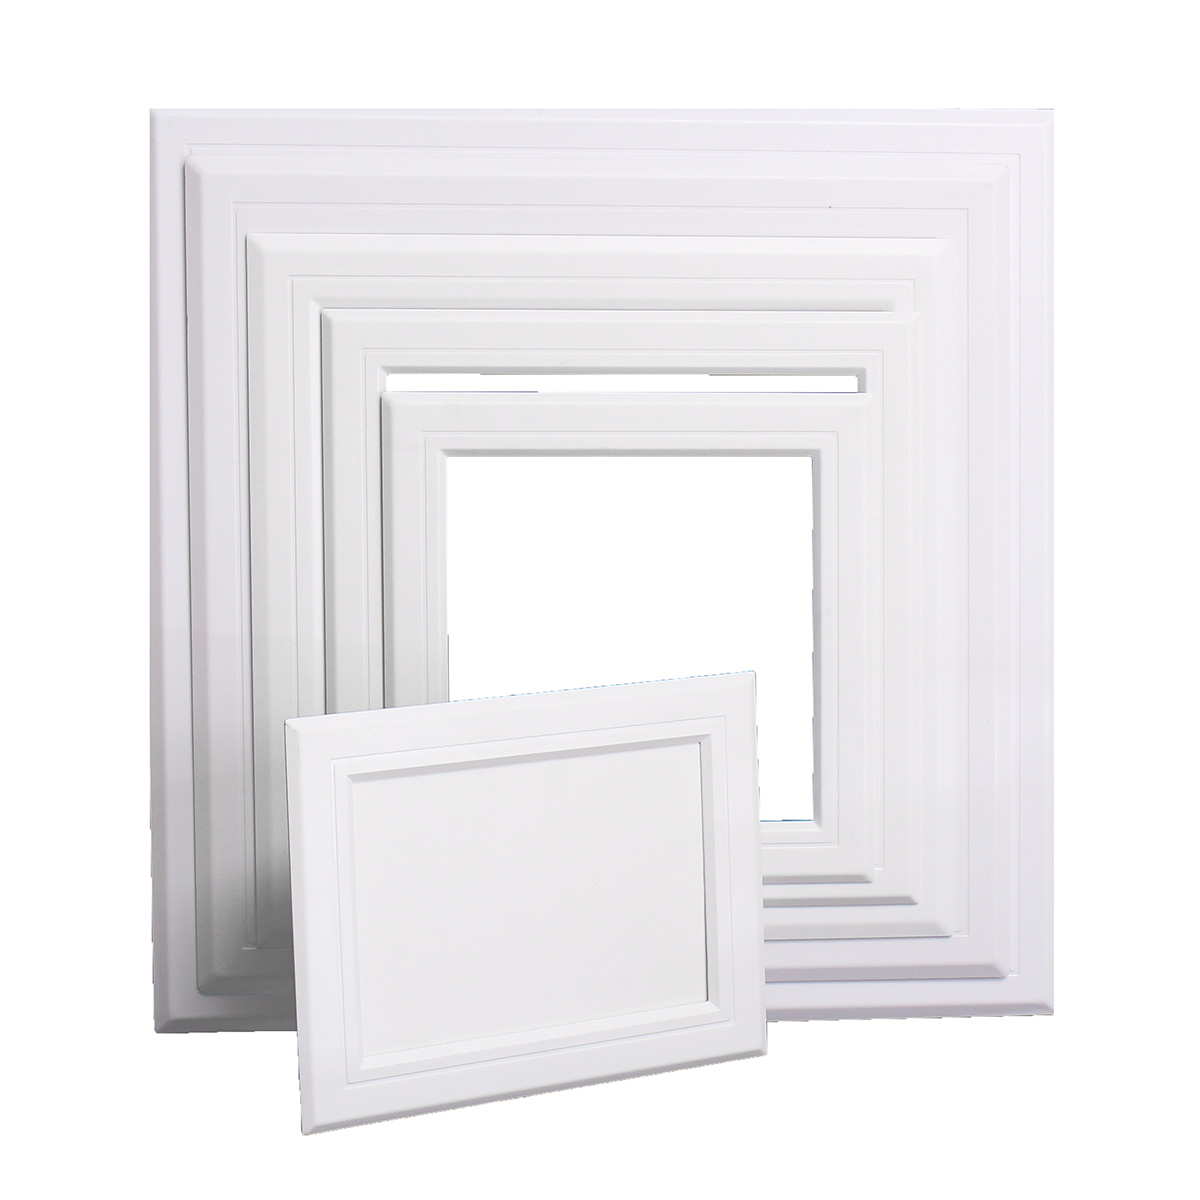 small resolution of abs wall ceiling access panel 7 sizes white inspection plumbing wiring door revision hatch cover in core vents from home improvement on aliexpress com